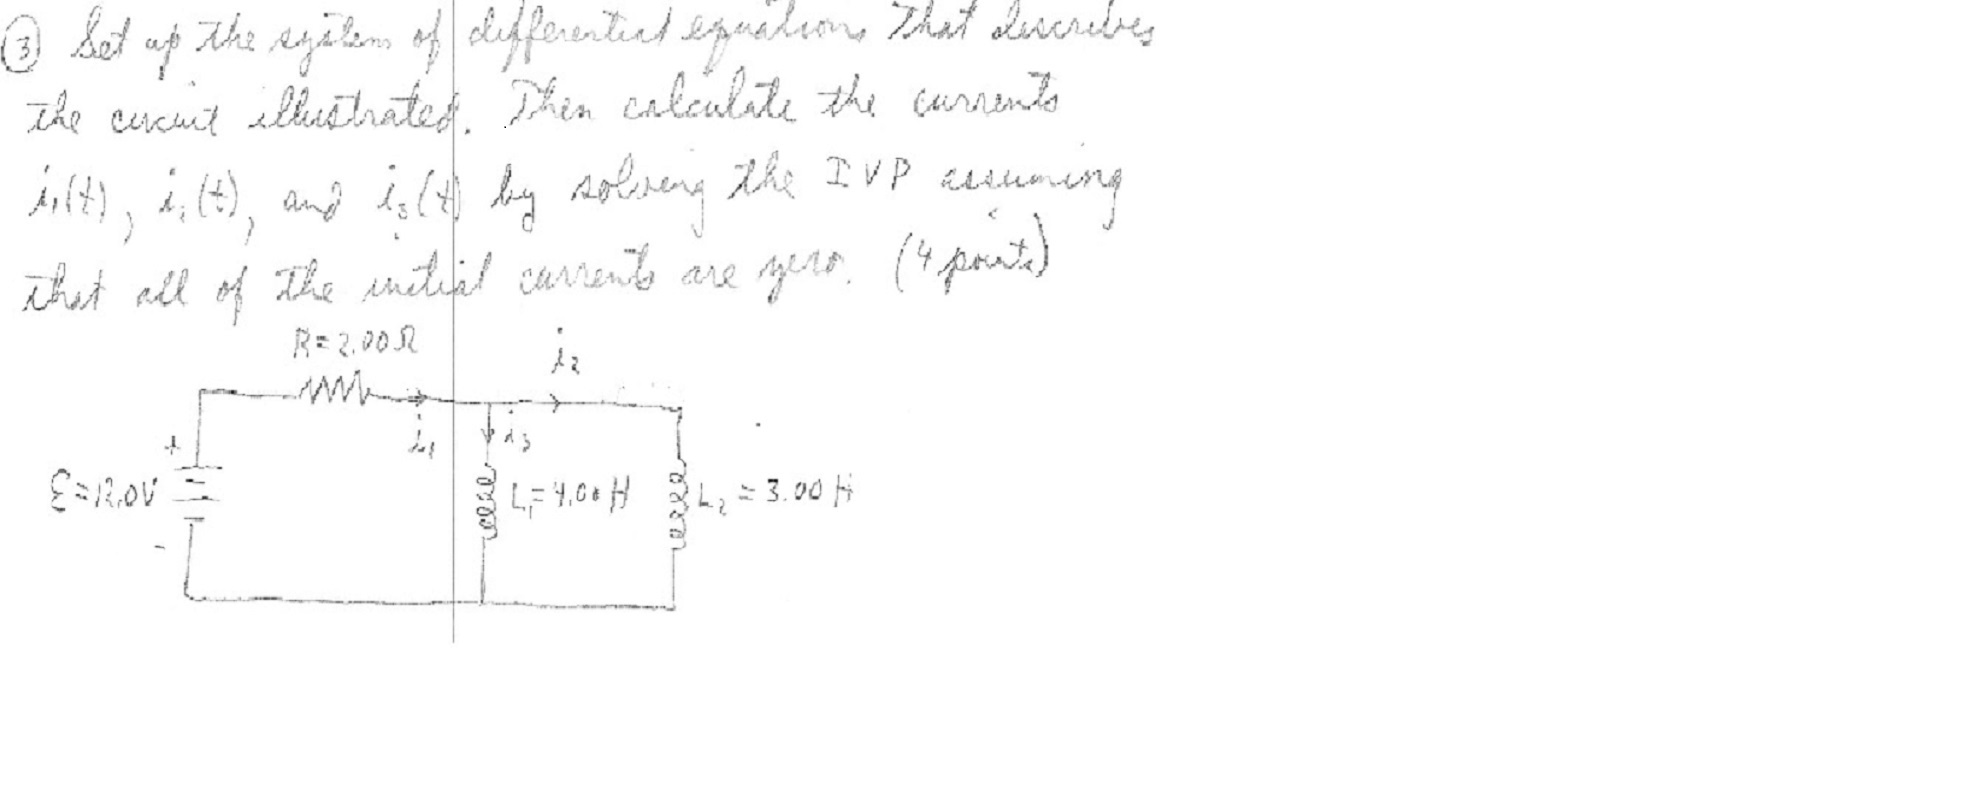 Set up the system of differential equation that de